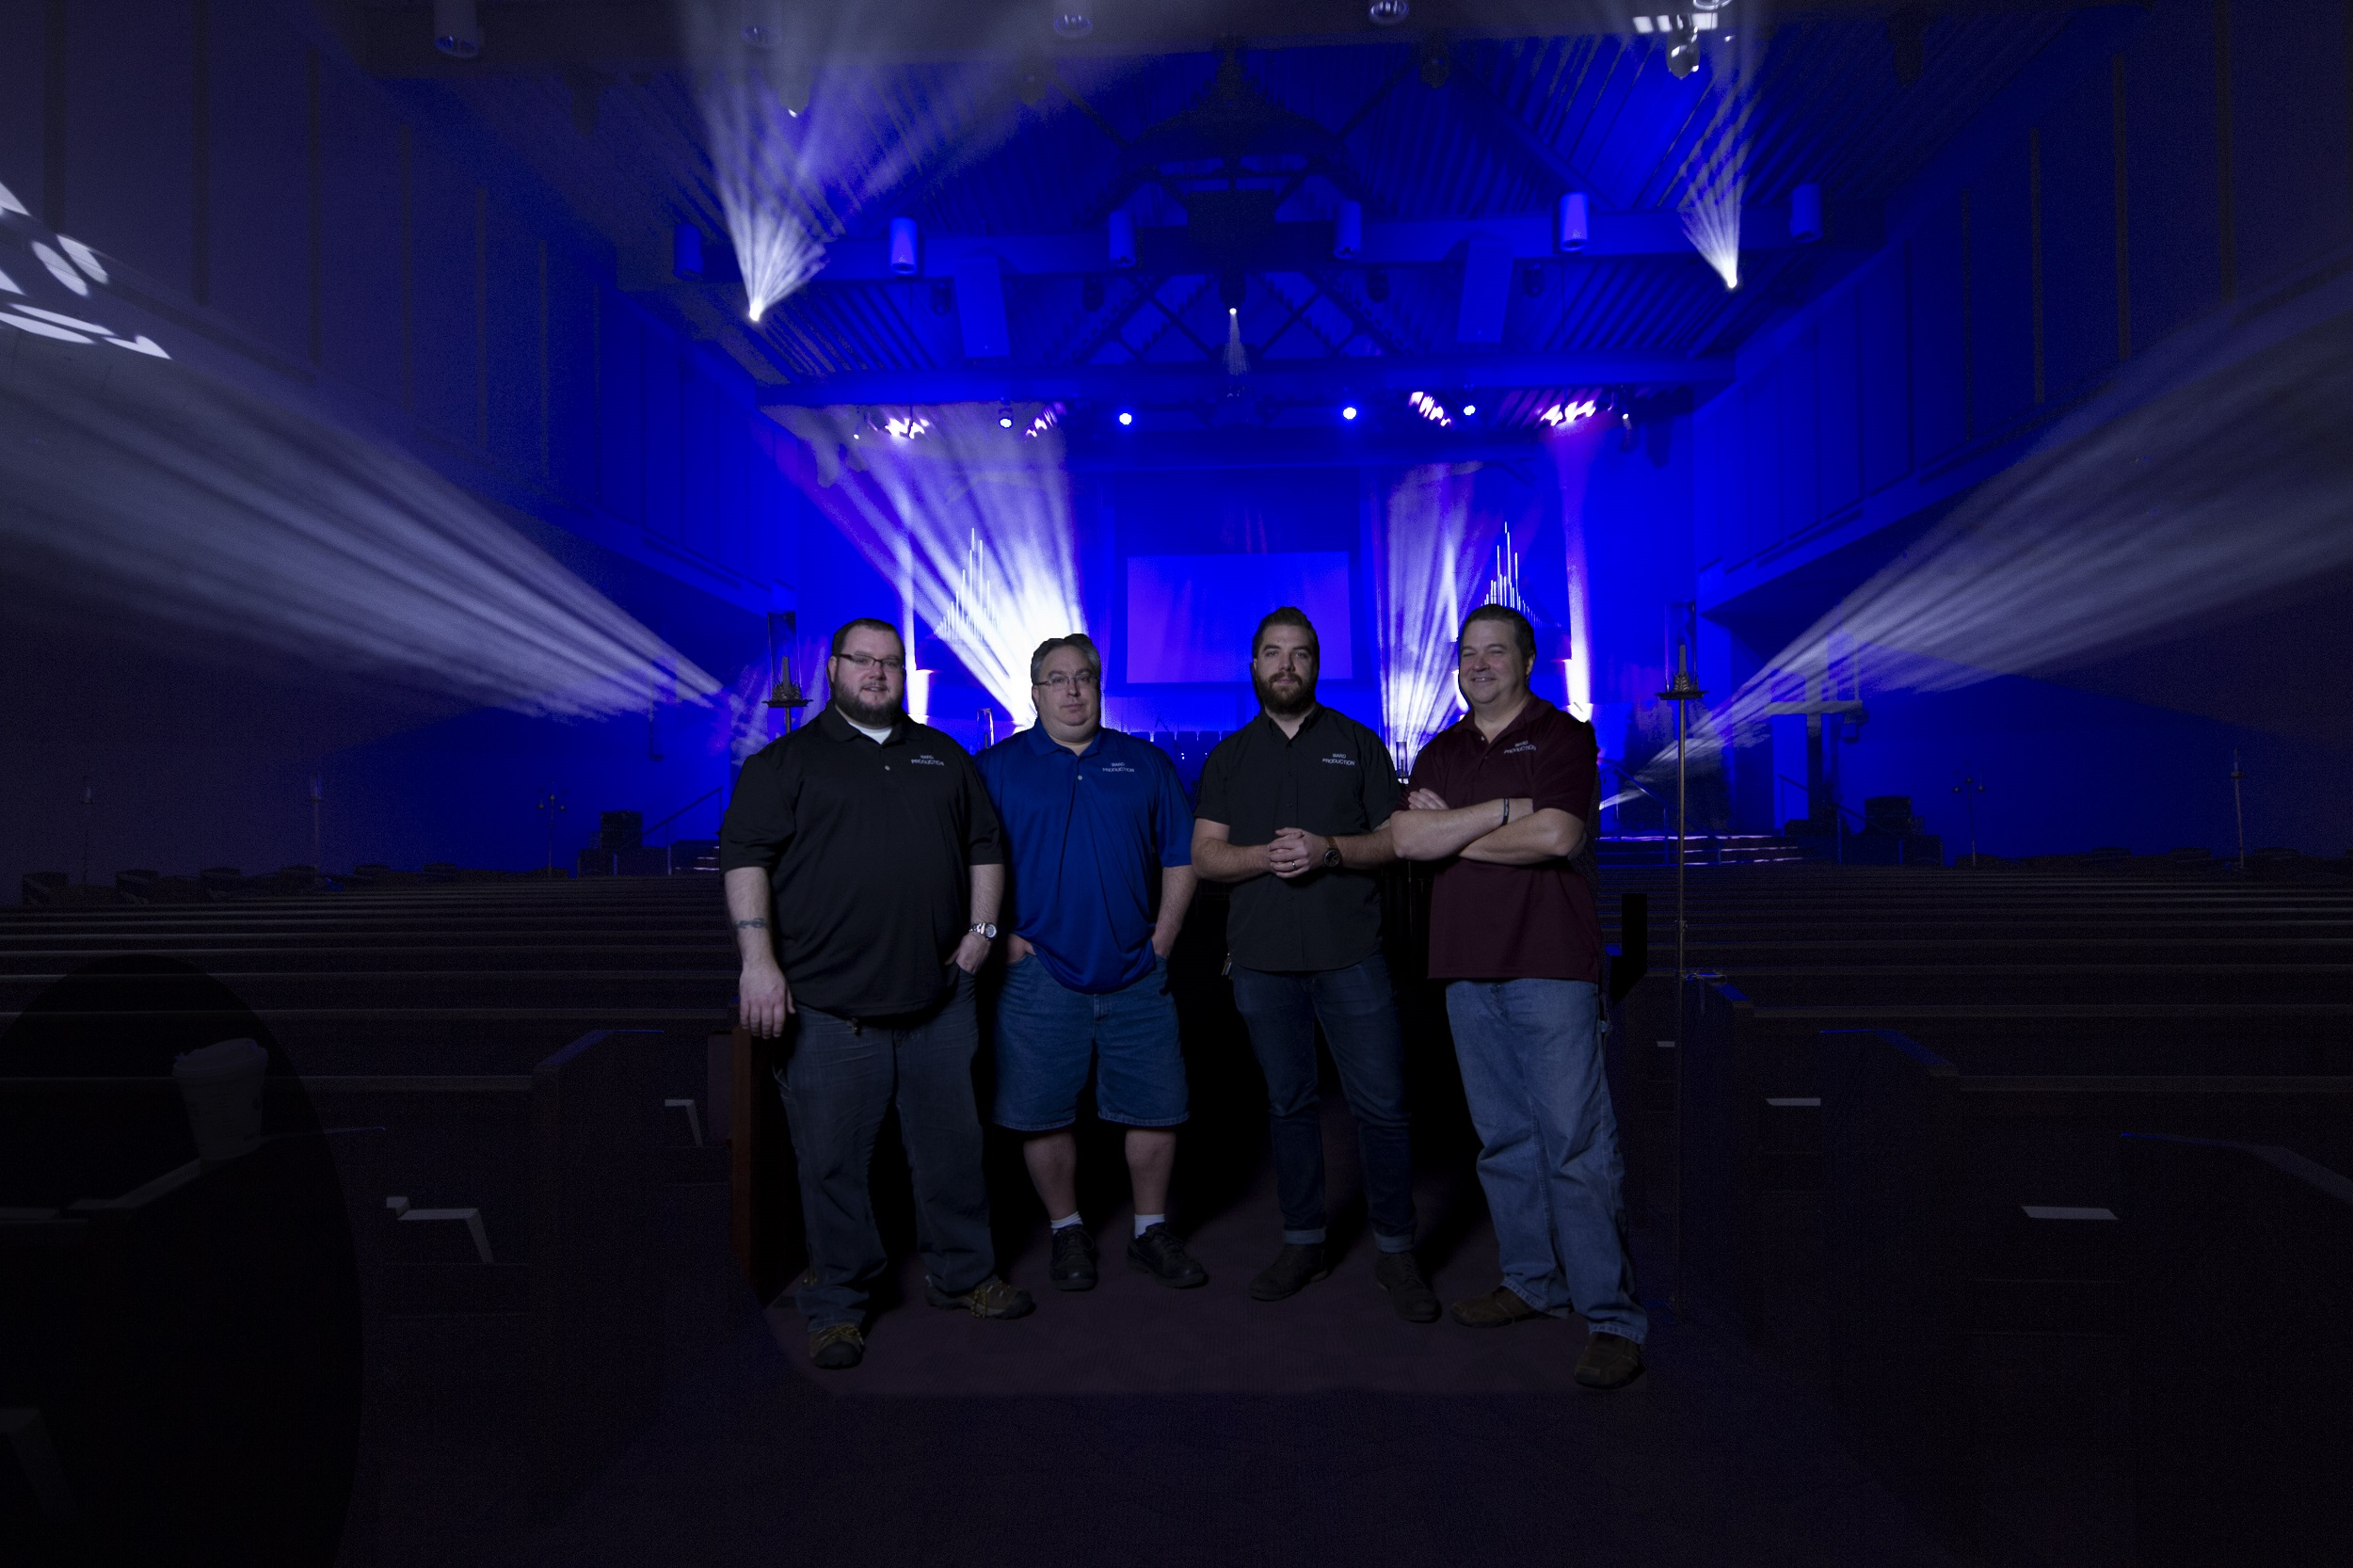 Ward Church_22 & Elation LED Lighting Upgrade Enhances Worship at Michiganu0027s Ward ...